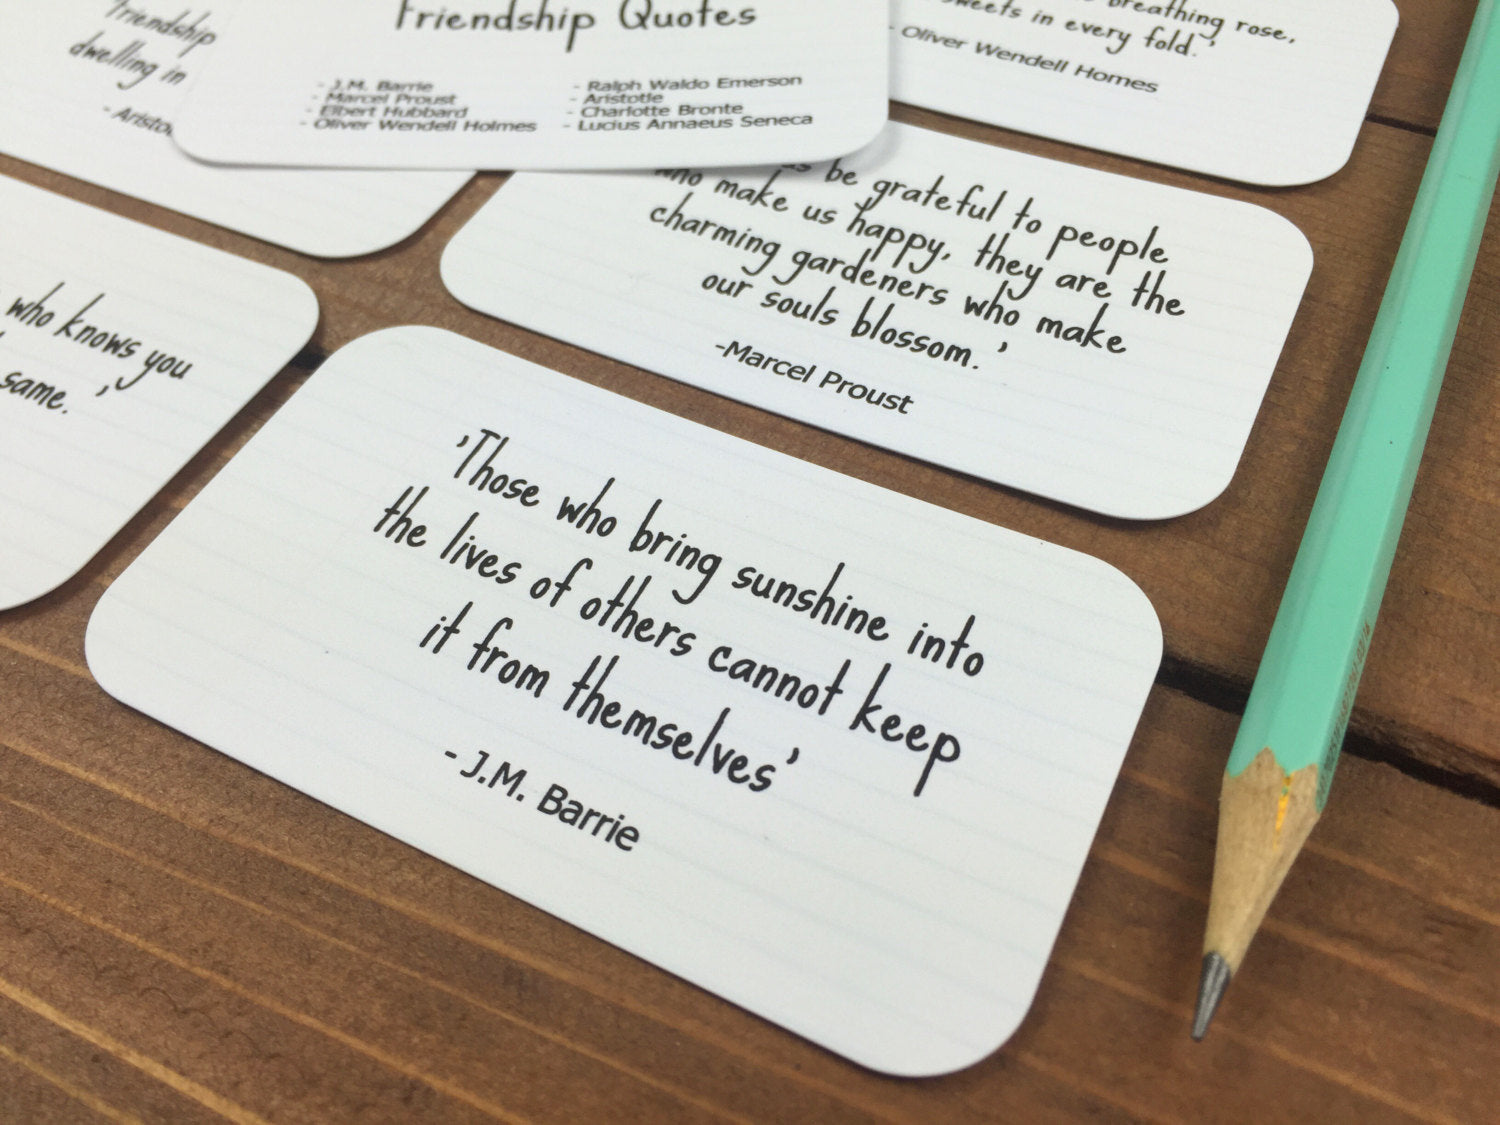 Friendship Quotes, Friendship Gift, Long Distance Friendship, Best Friend Gift for Friend Moving Away, Friends  - Set of 8 Mini Quote Cards